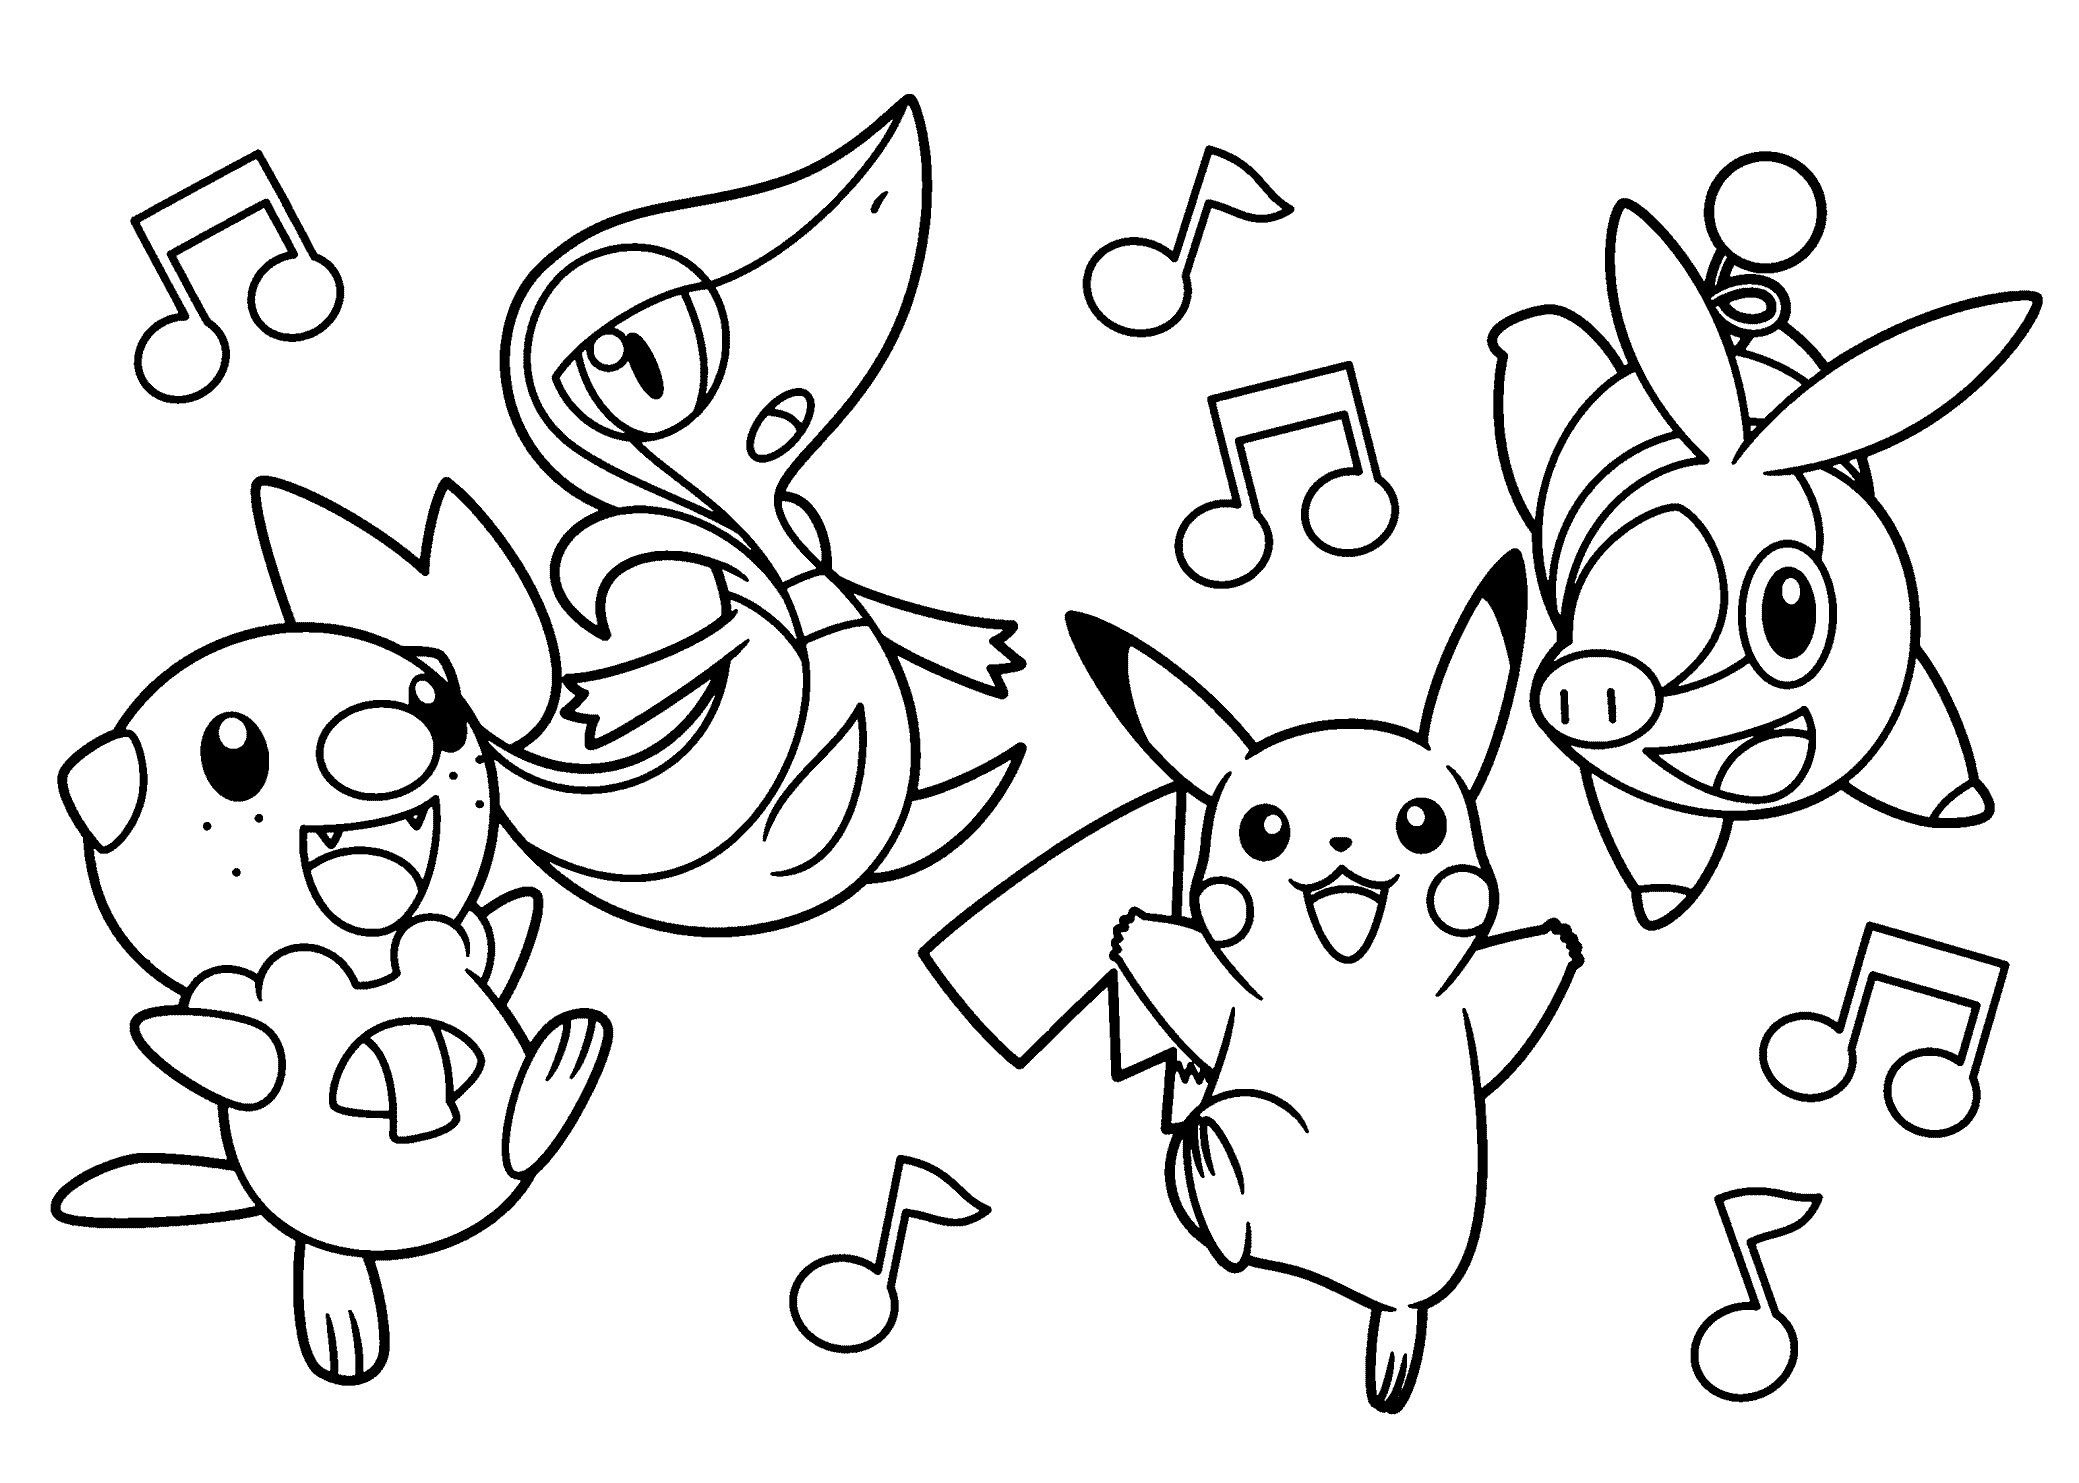 Pokemon Unova Coloring Pages From The Thousands Of Images On The Net Regarding Pokemon Unova Colori Pokemon Coloring Pages Cool Coloring Pages Coloring Pages